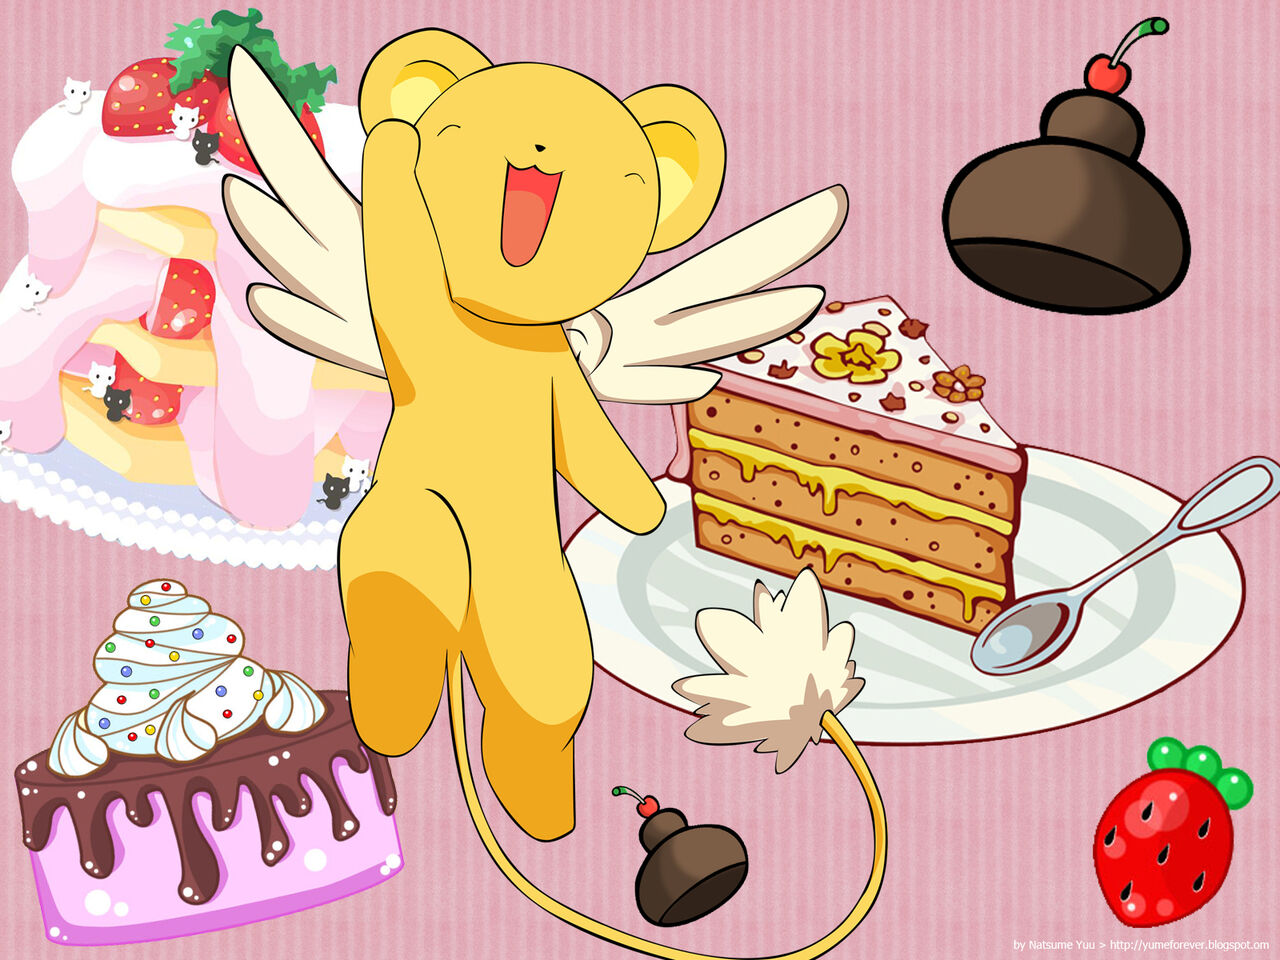 kero chan wallpaper - photo #8